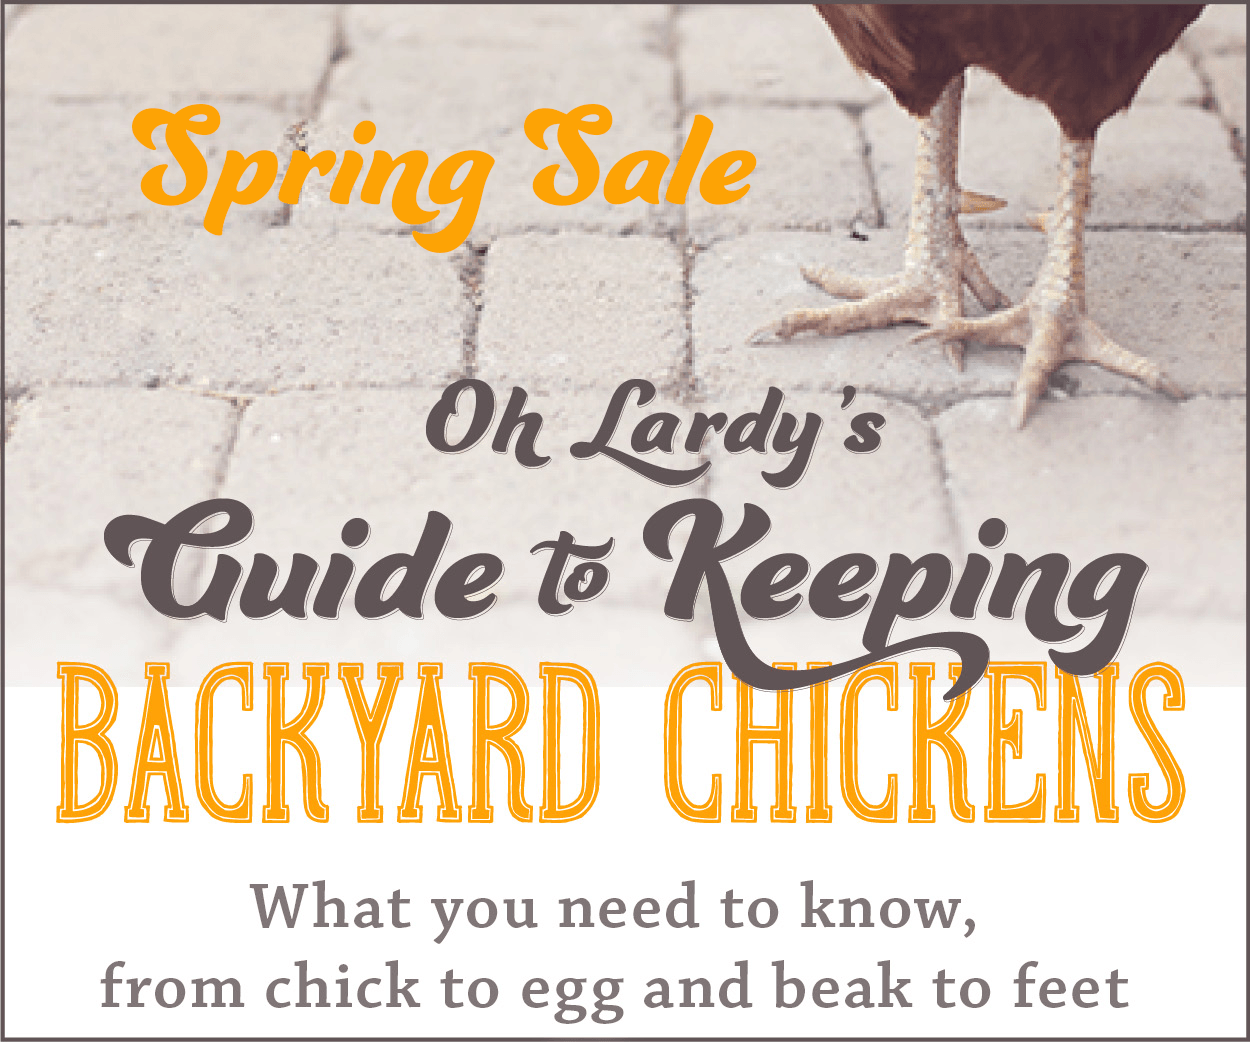 Oh Lardy's Guide to Backyard Chickens